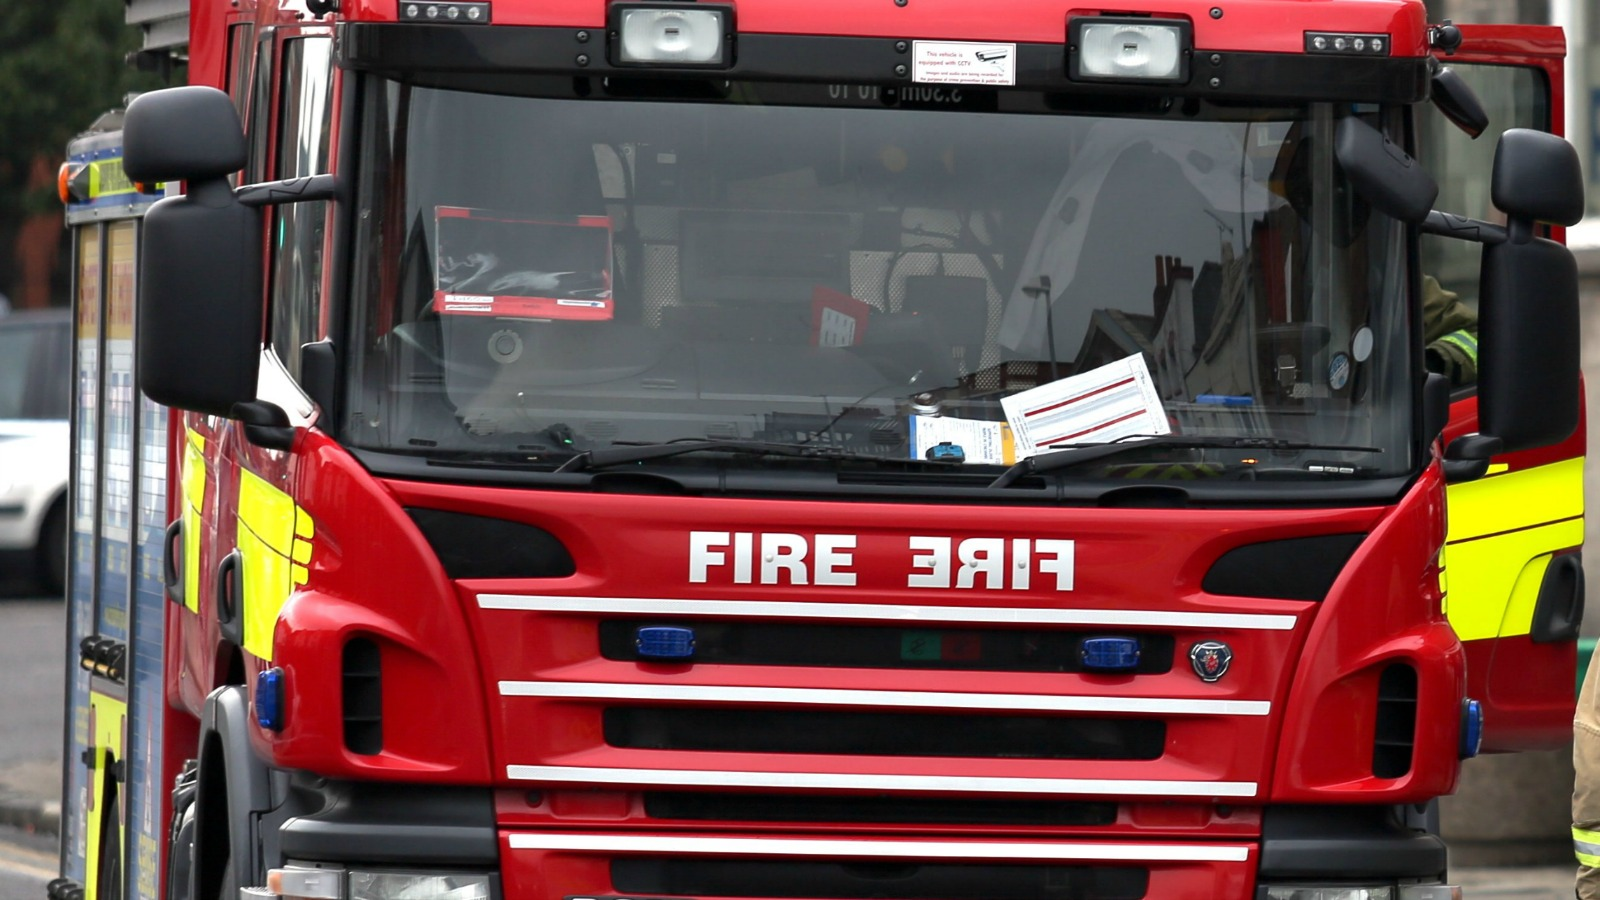 Two call-outs for fire crews in an hour